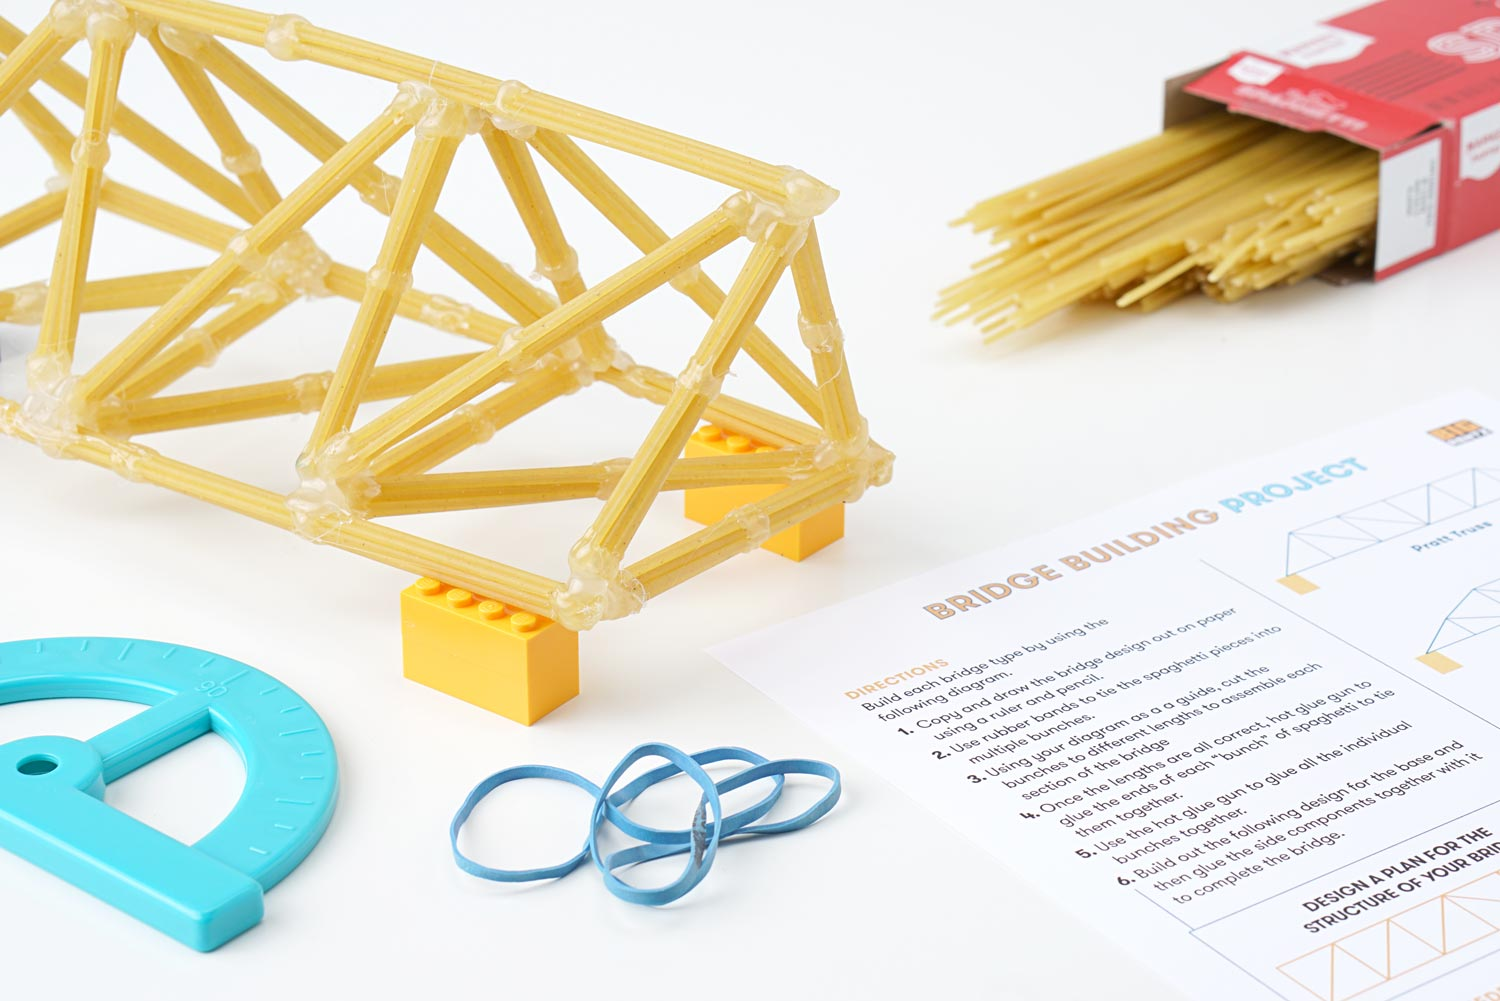 A kids' bridge made from sphaghetti and hot glue